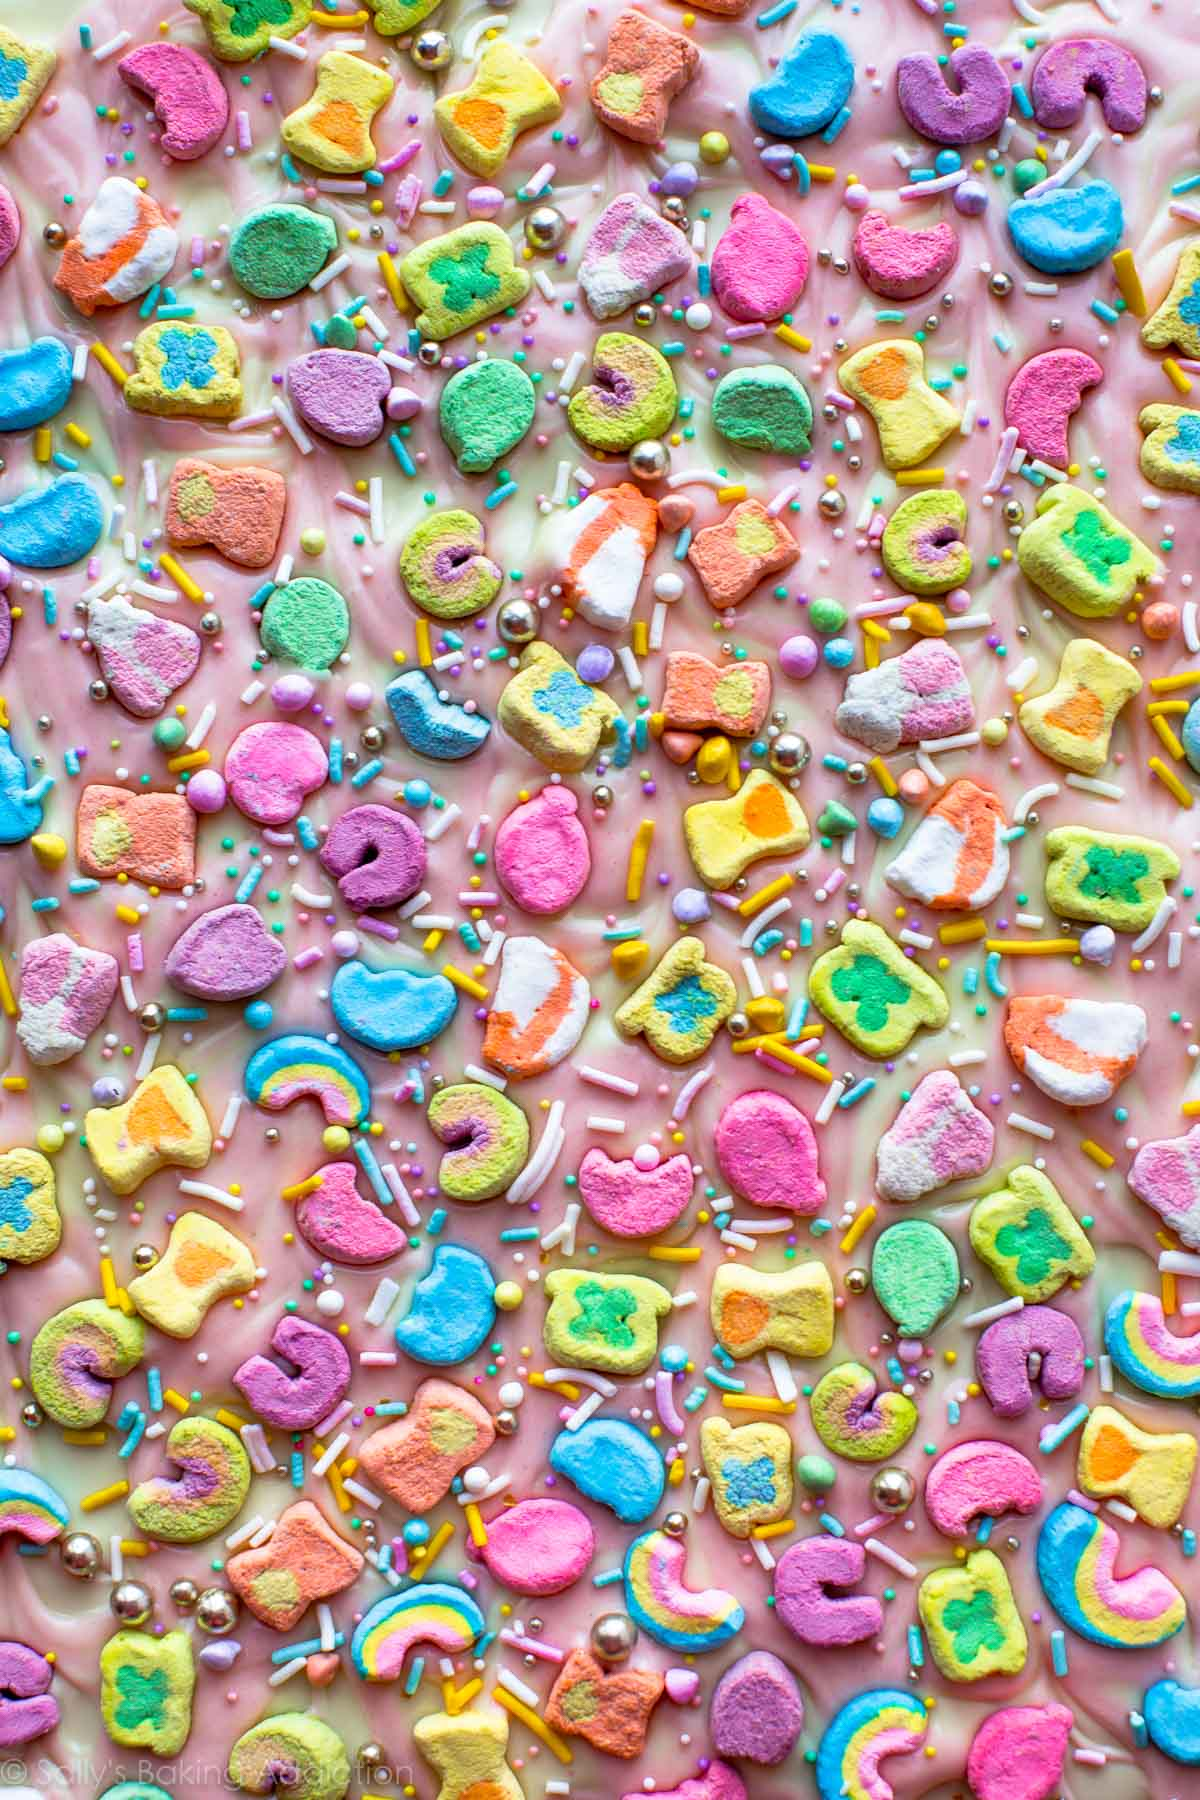 3 Ingredient Lucky Charms Bark Sallys Baking Addiction